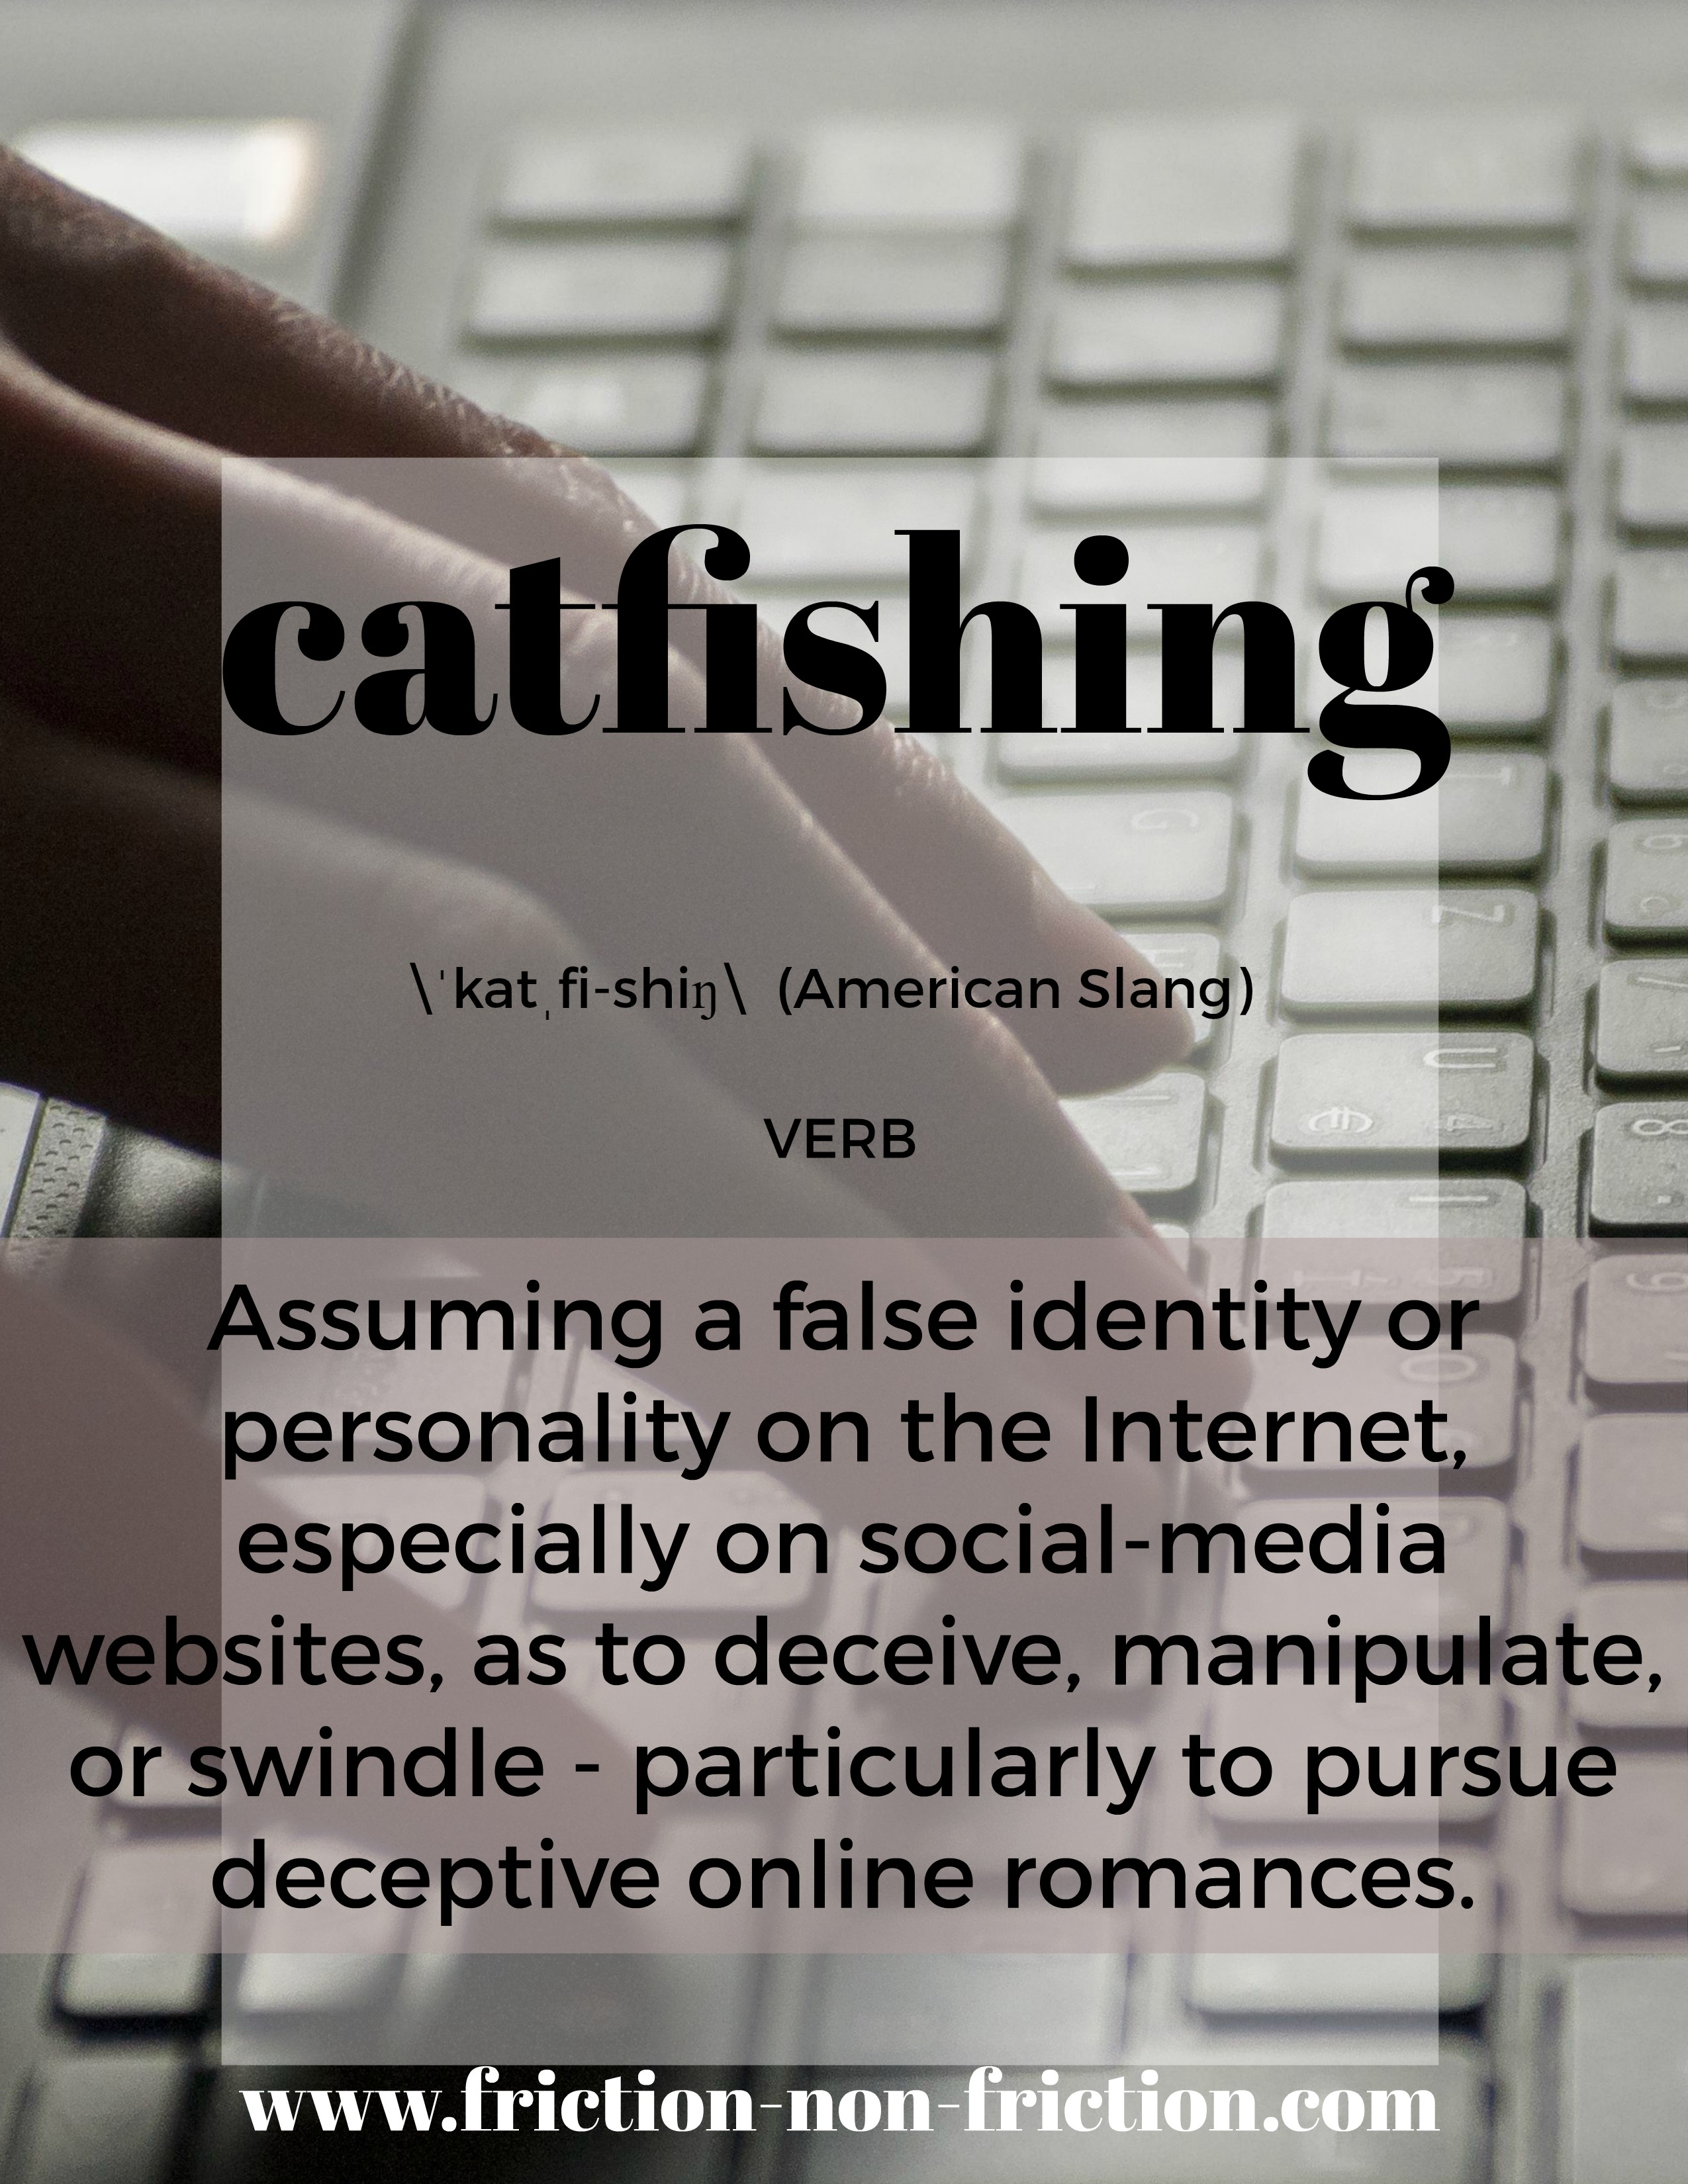 Catfishing -- another great FRICTIONARY definition from Friction non Friction